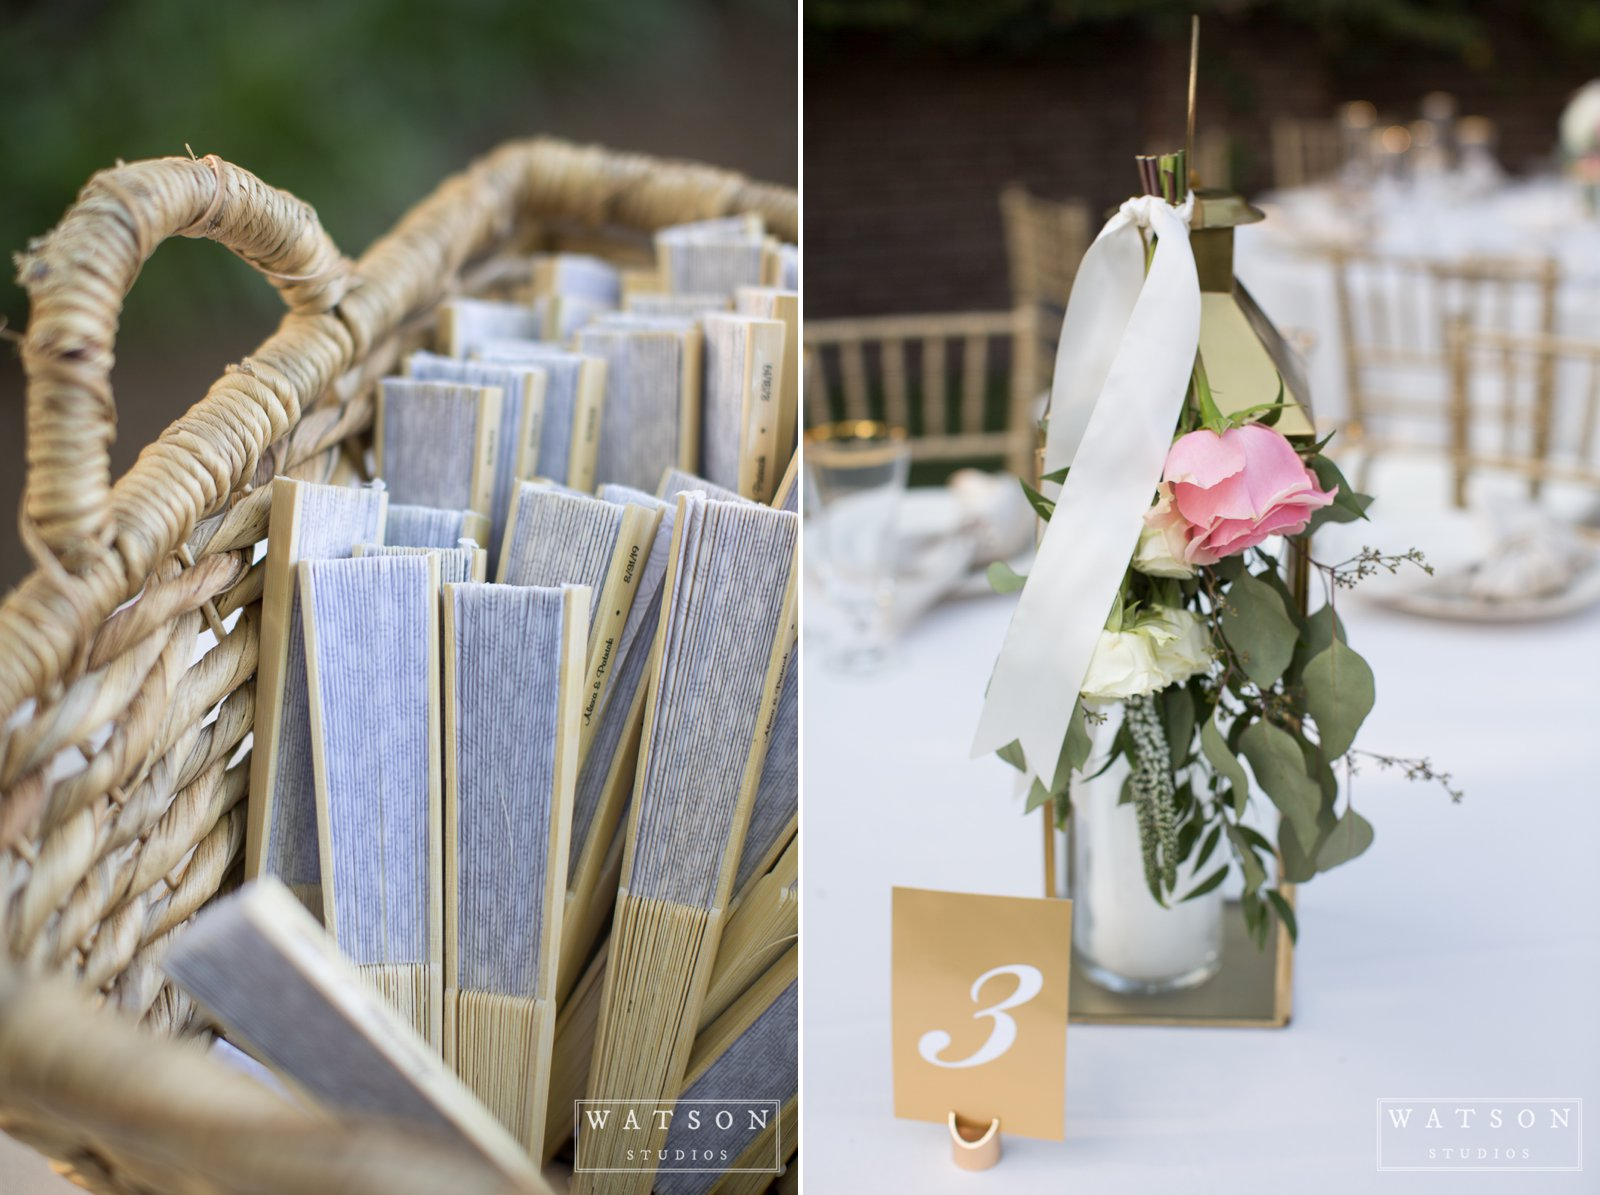 East Ivy Mansion Wedding decor